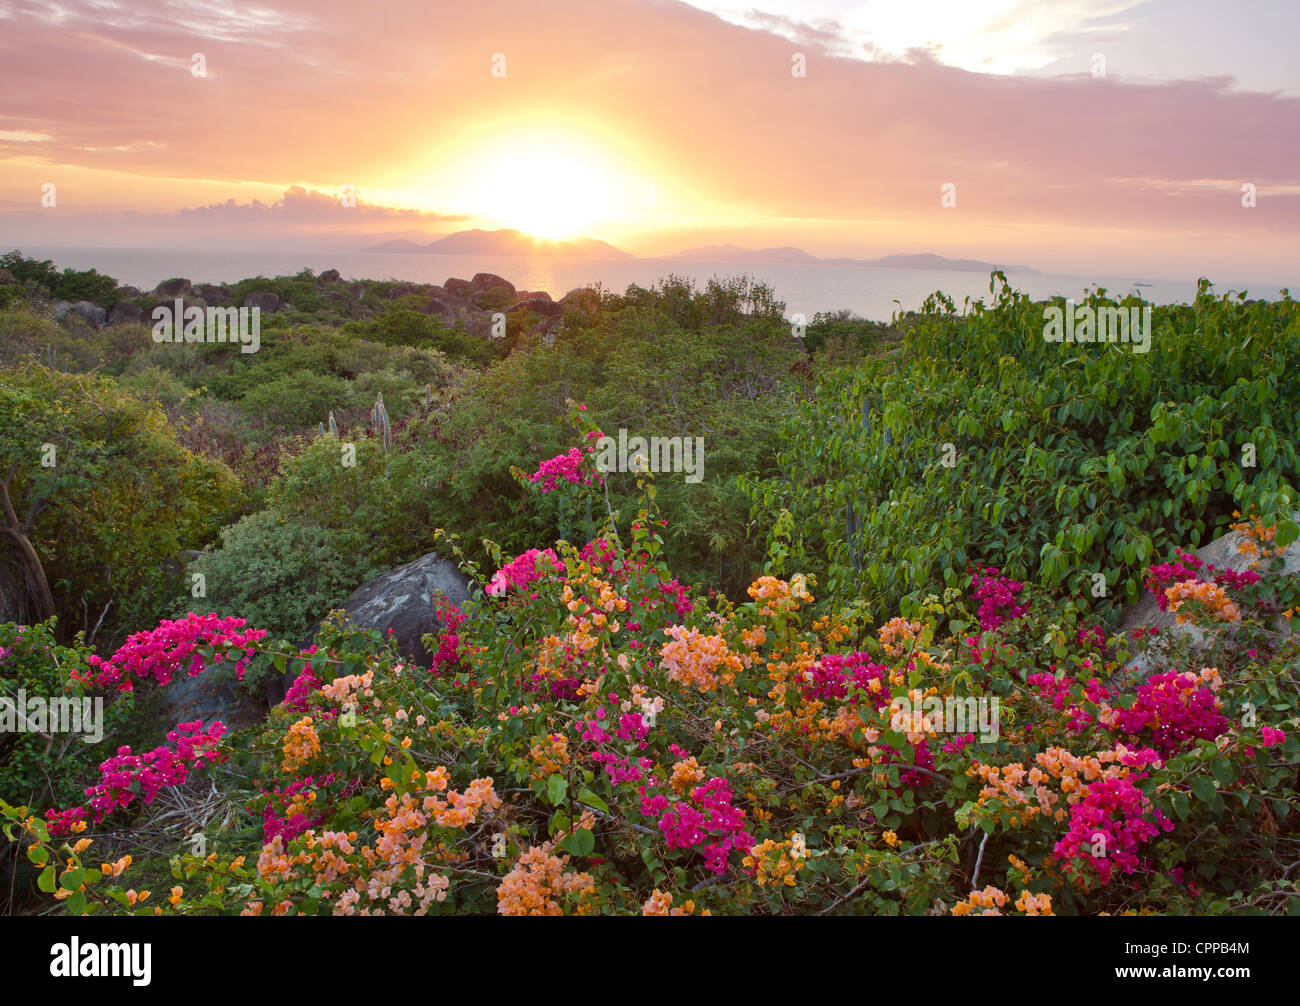 Virgin Gorda, British Virgin Islands, Caribbean: View of setting sun over distant islands in the Caribbean Sea - Stock Image